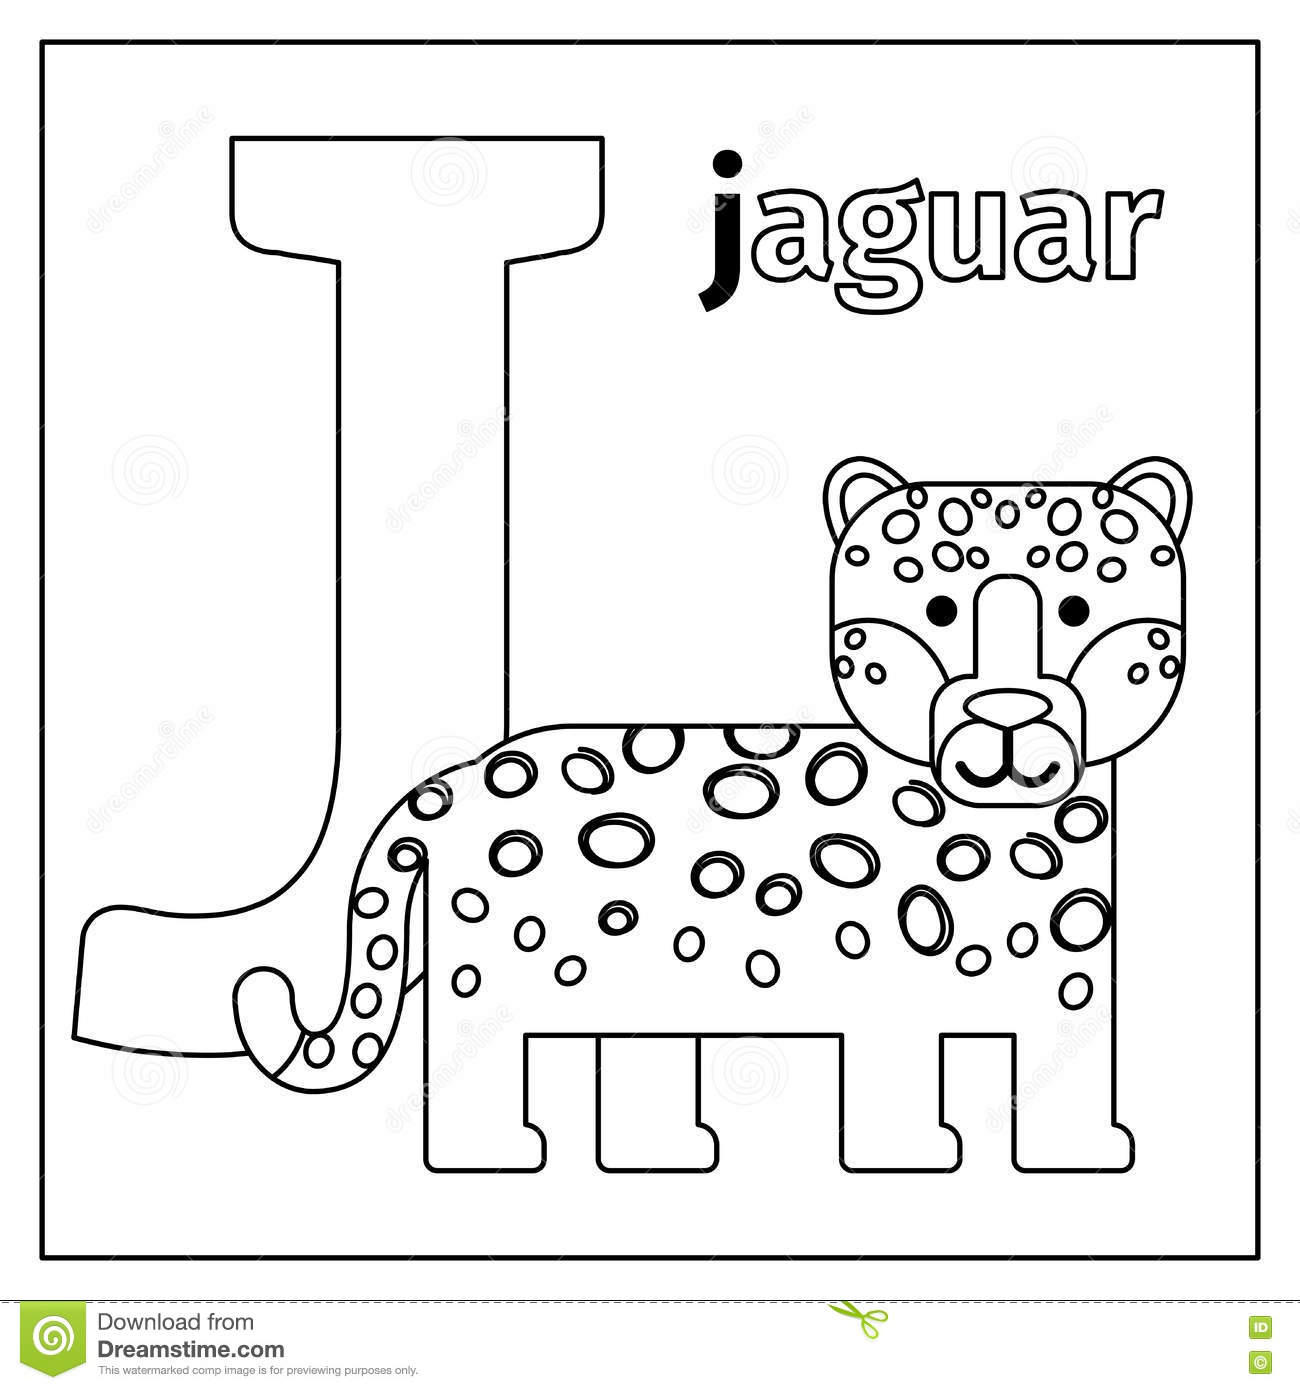 Jaguar Letter J Coloring Page Stock Vector